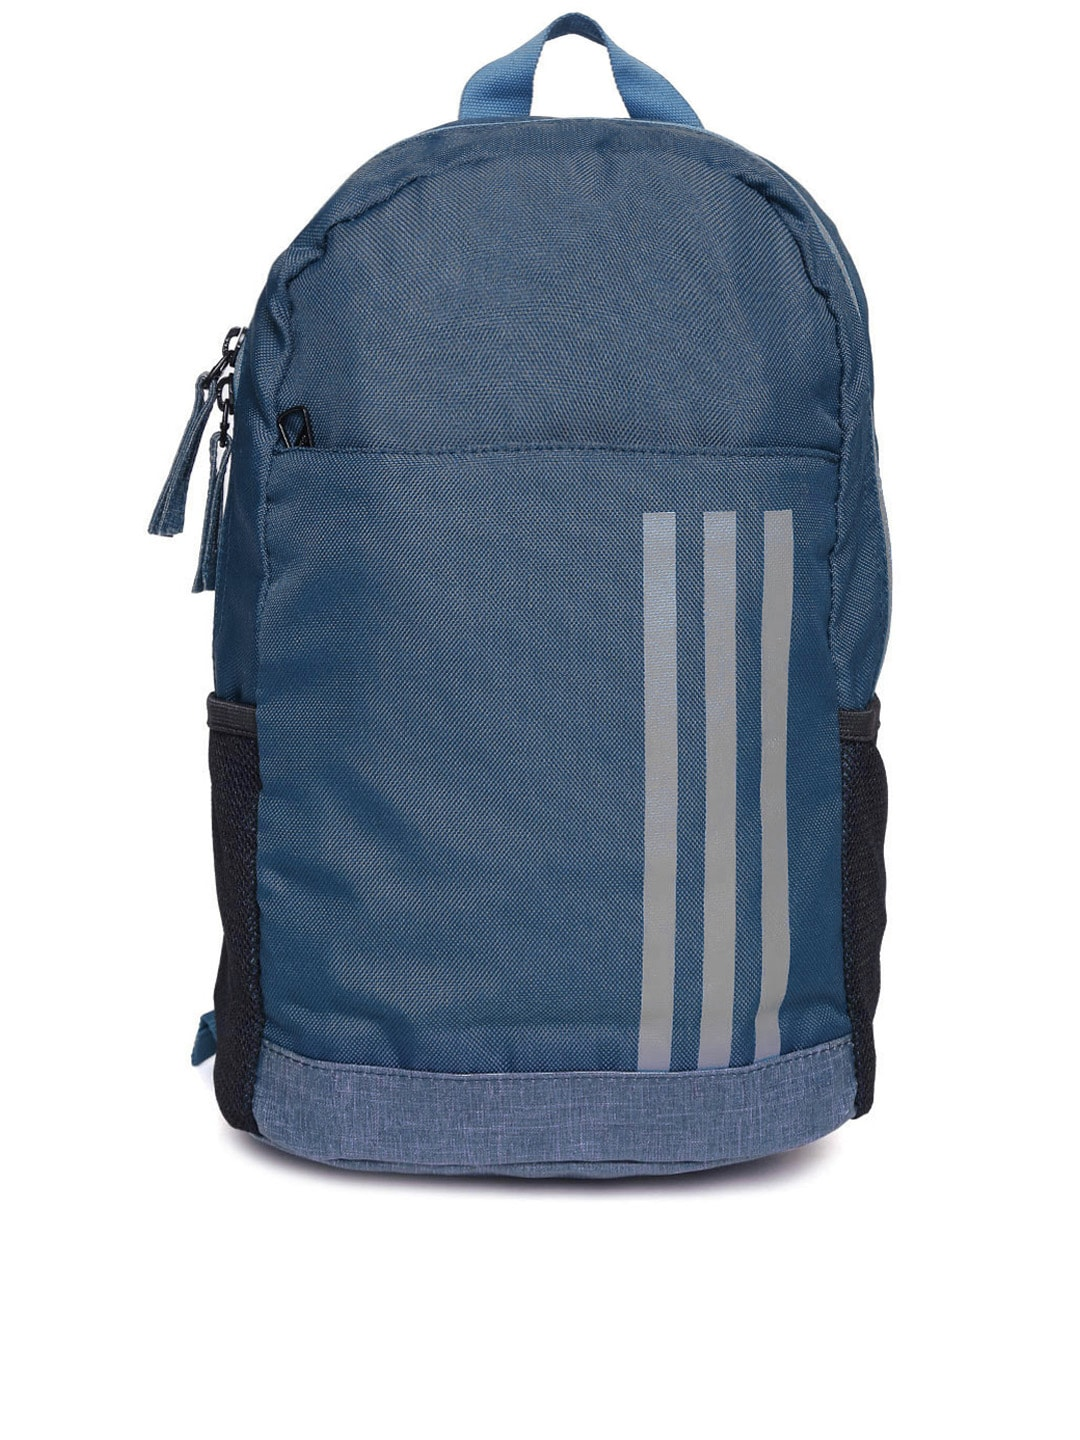 ca7e34b4b5b3 Buy adidas blue bag   OFF43% Discounted